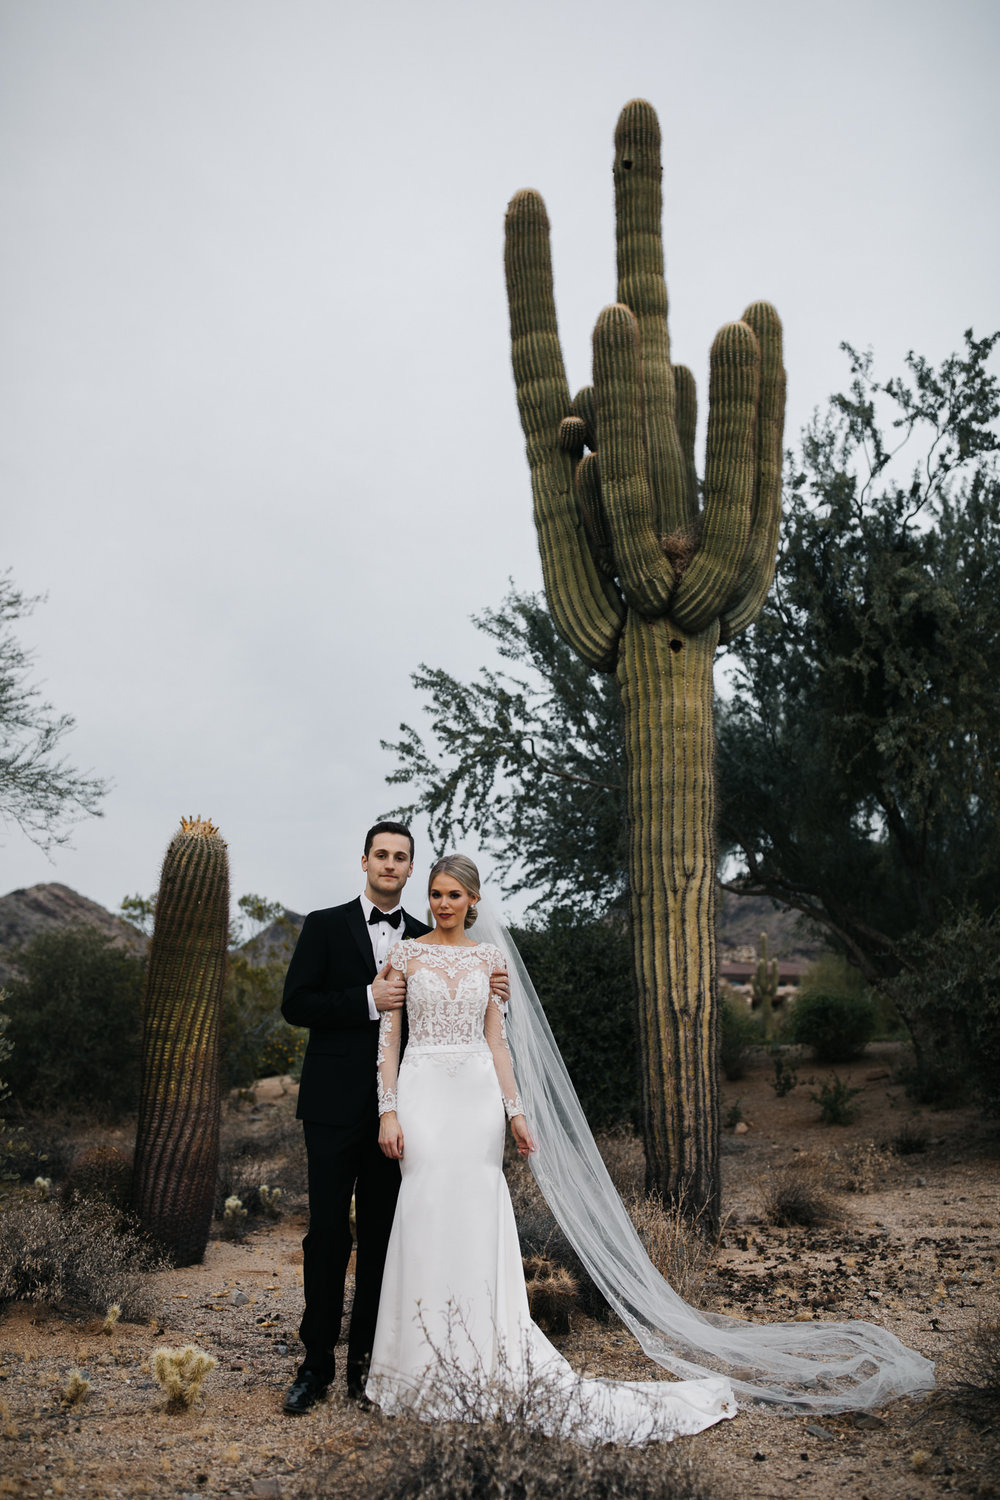 eastlyn and joshua scottsdale wedding photographer-88.JPG